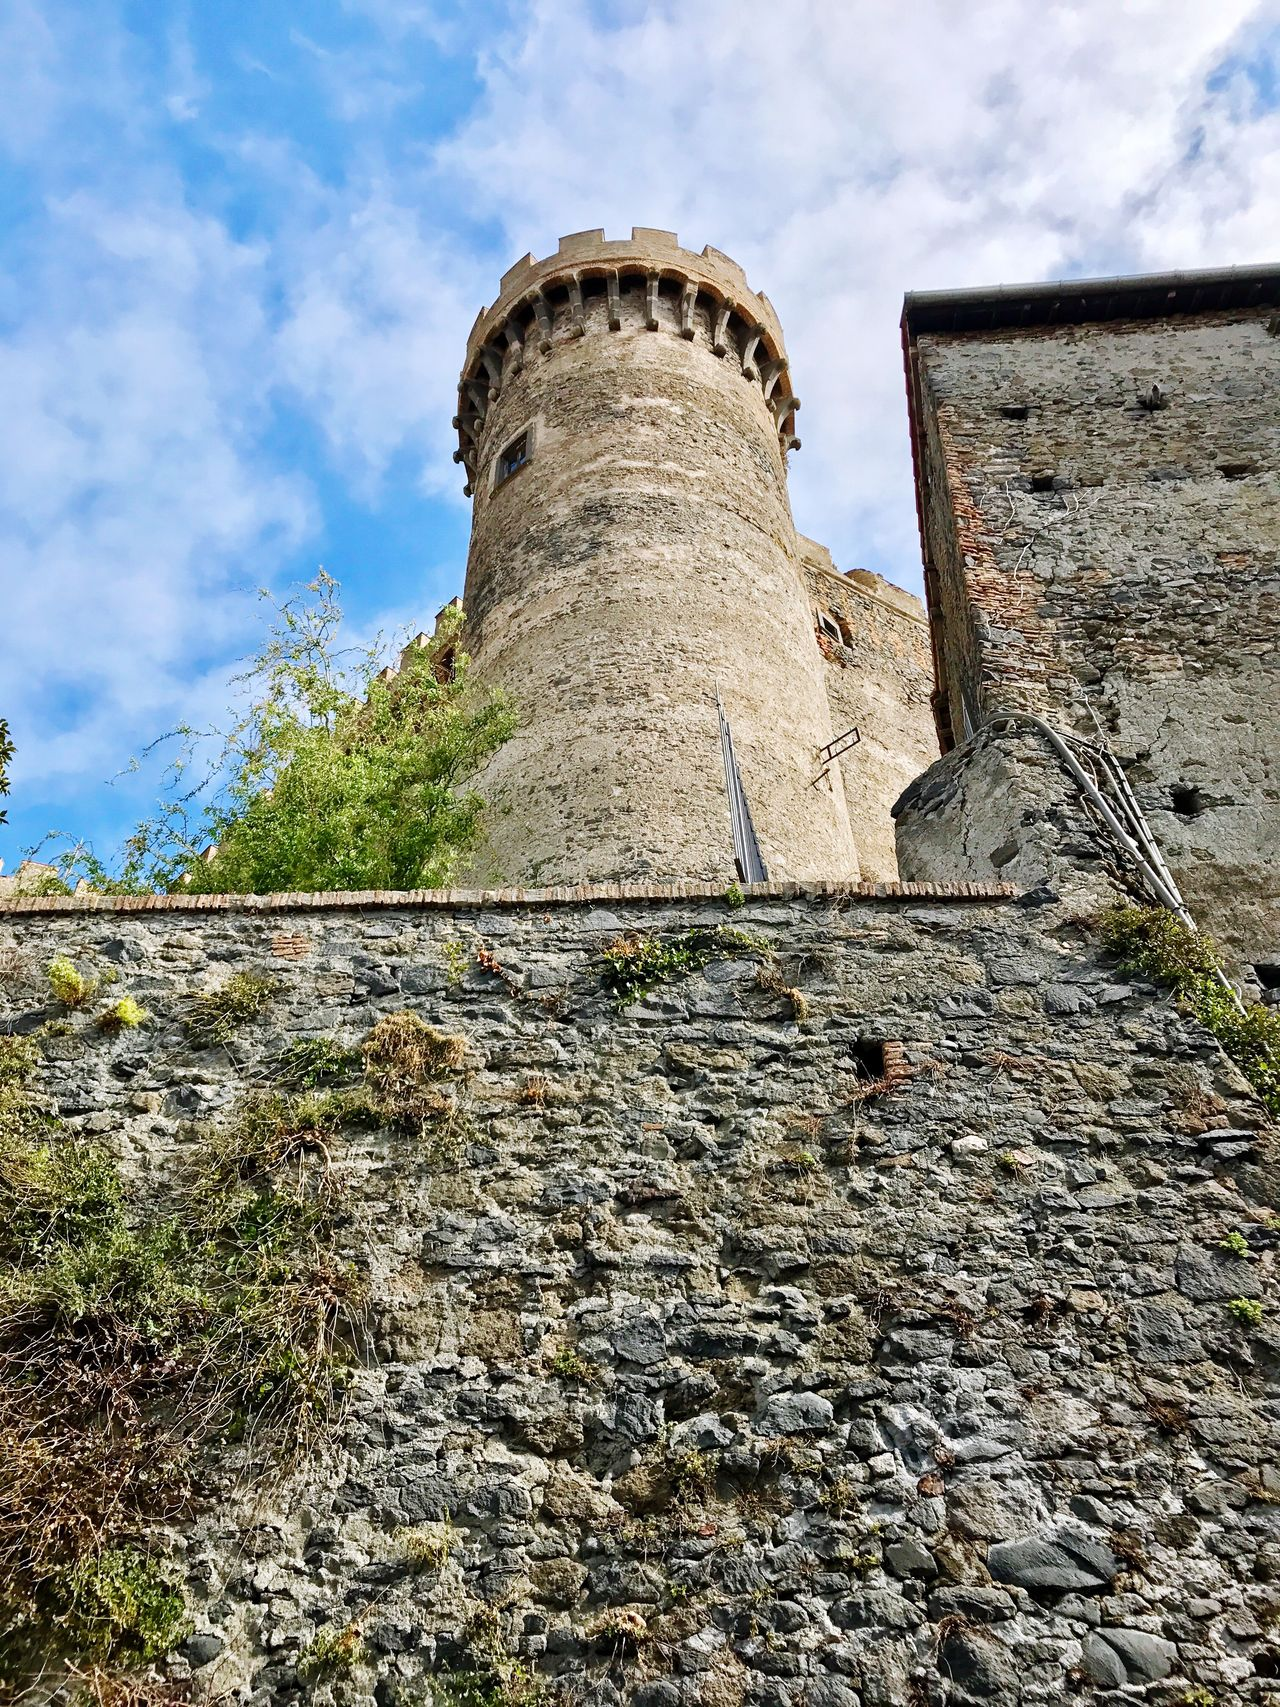 Architecture Low Angle View Built Structure Sky Day Cloud - Sky History Outdoors No People Building Exterior Nature Ancient Civilization Torre Torony Bástya Bastione Wheniwasanapple Régi Motoros Castello Kastély